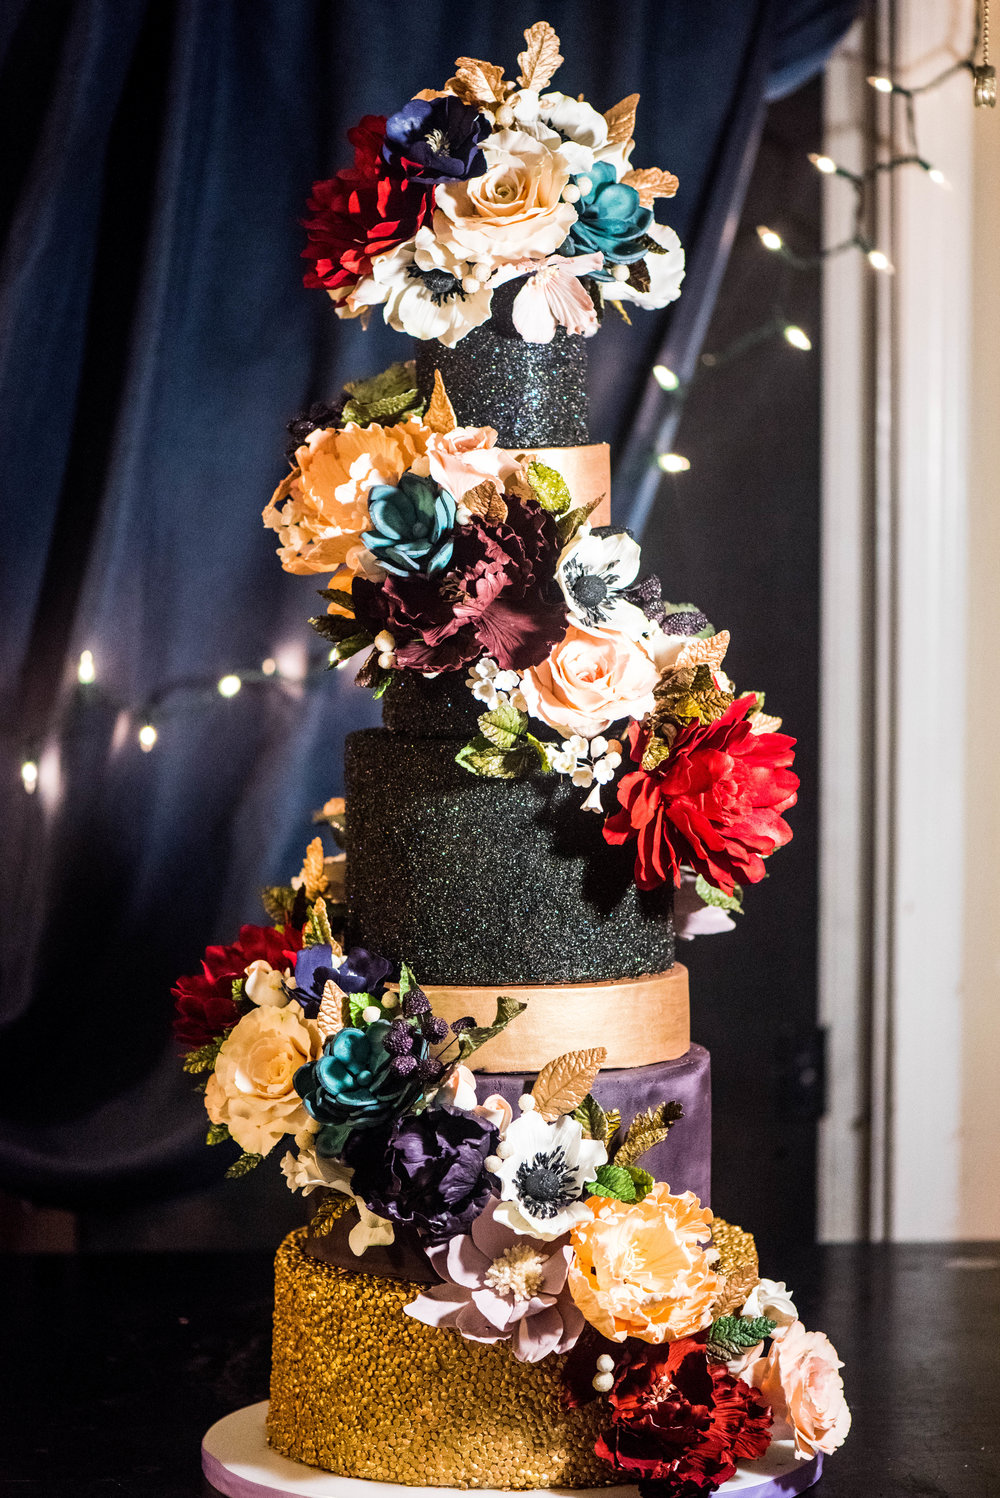 A Dazzling Design - Six Tiers of Sparkling Elegance